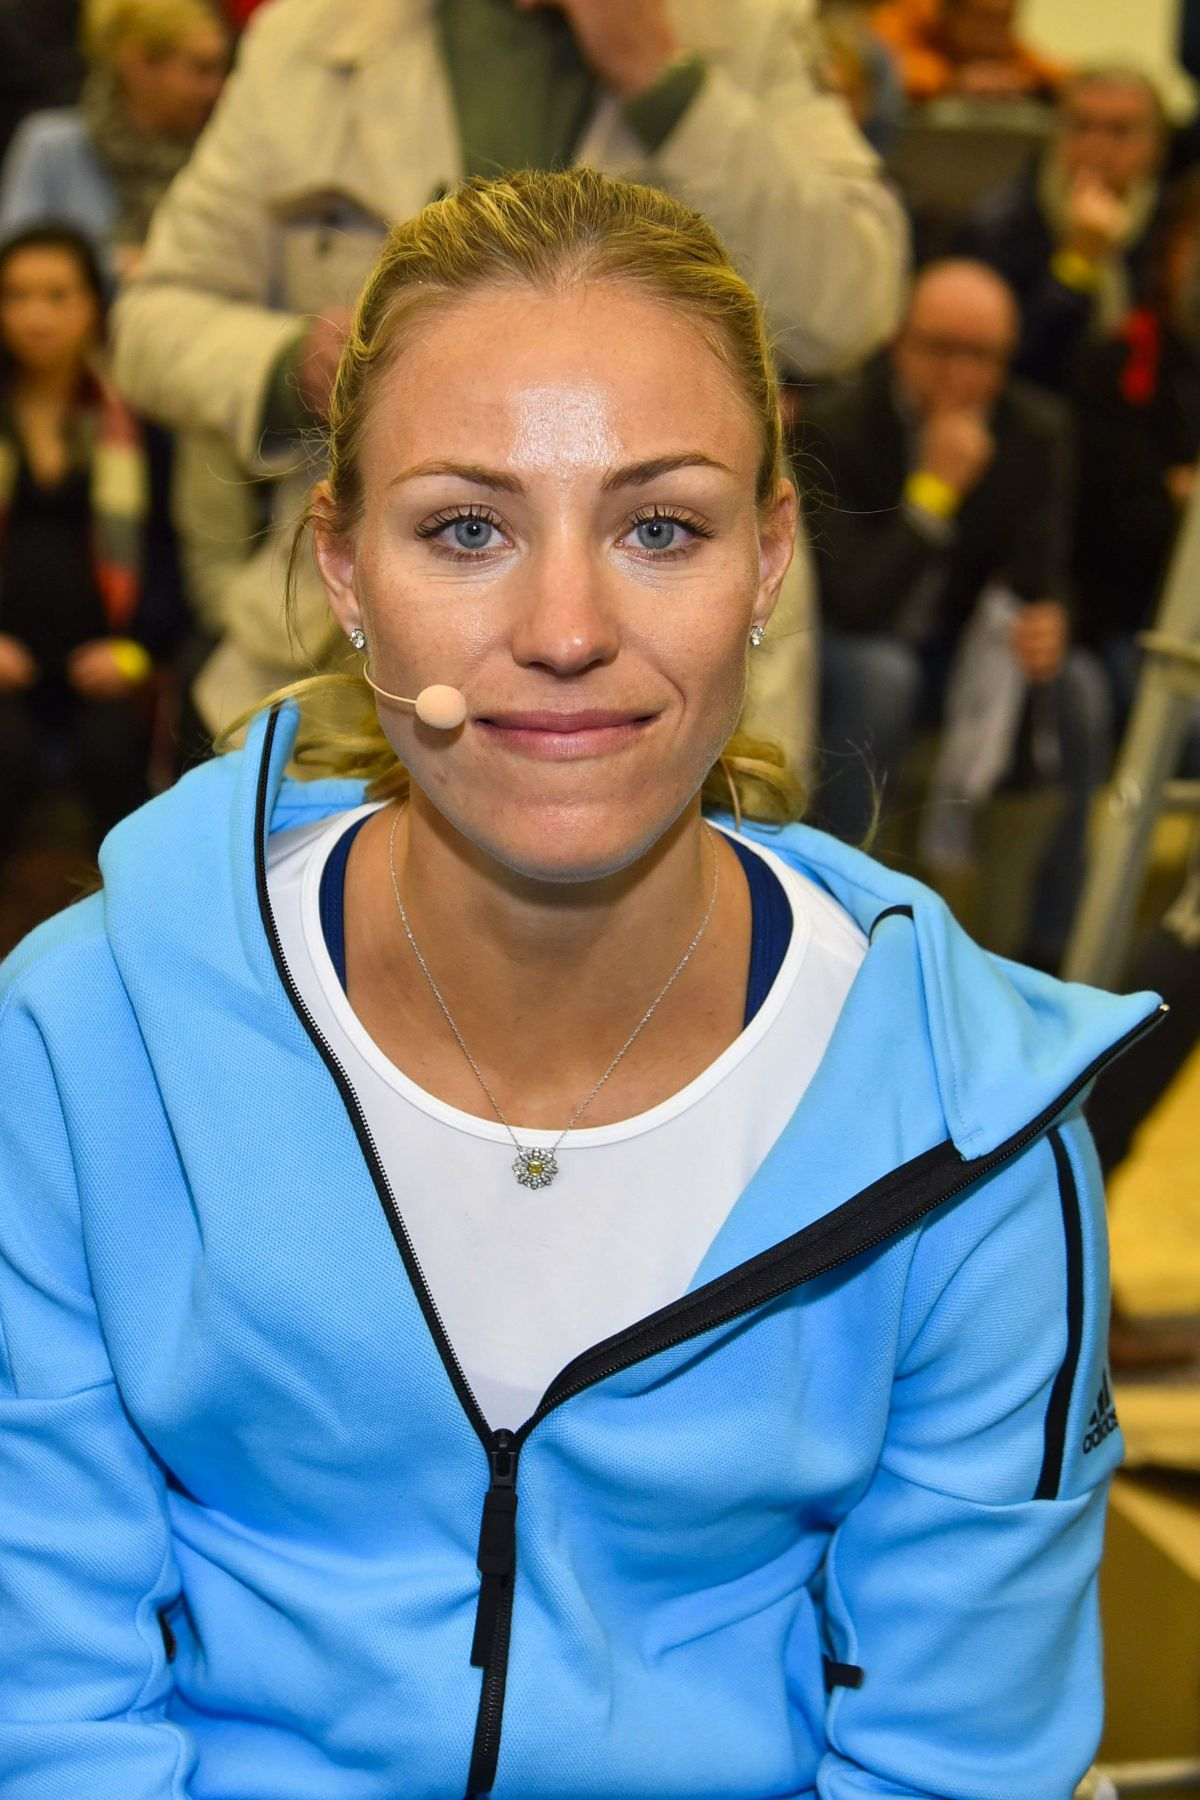 ANGELIQUE KERBER at Press Release from Tennis - Point and Batsman Jones in Hamburg 11/16/2016